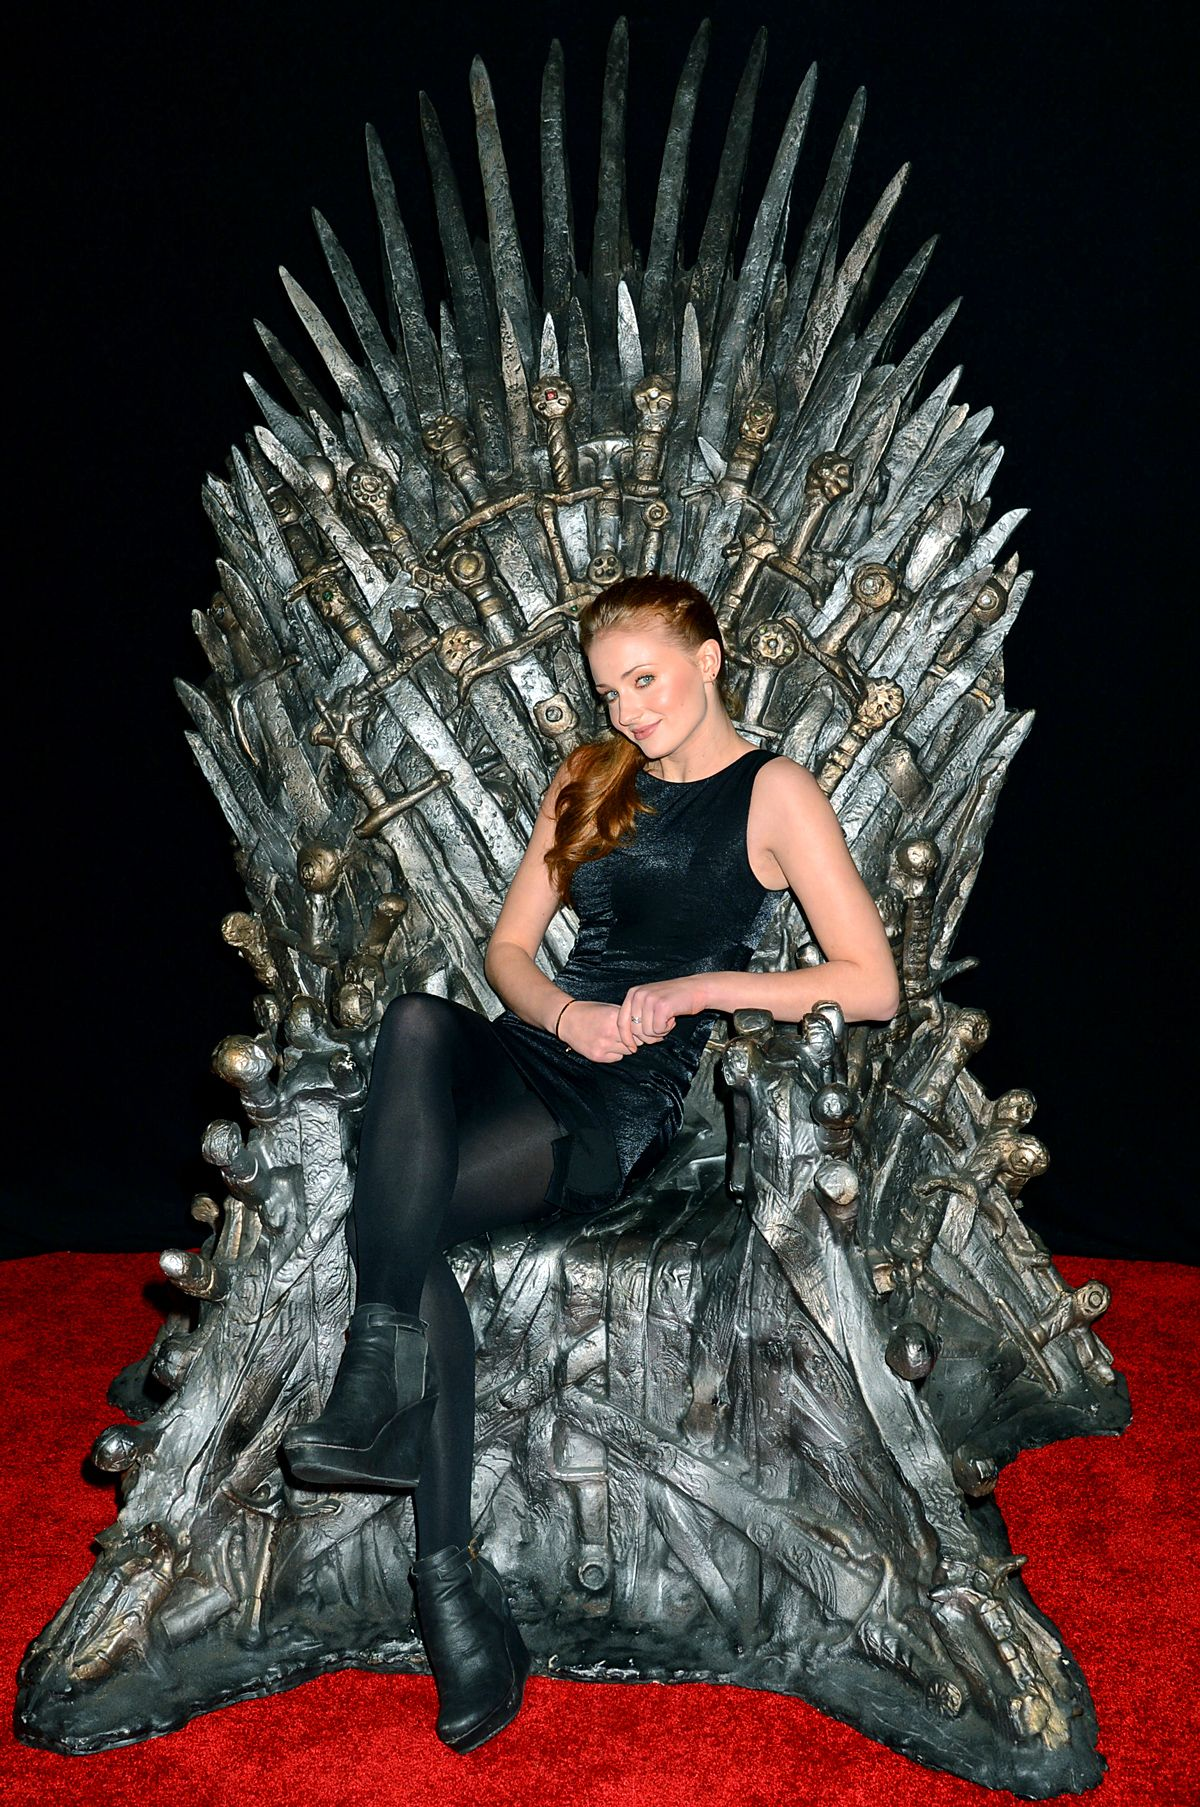 Hbo Unveils An Even Bigger Iron Throne Of Westeros Sophie Turner Celebrities Maisie Williams Sophie Turner